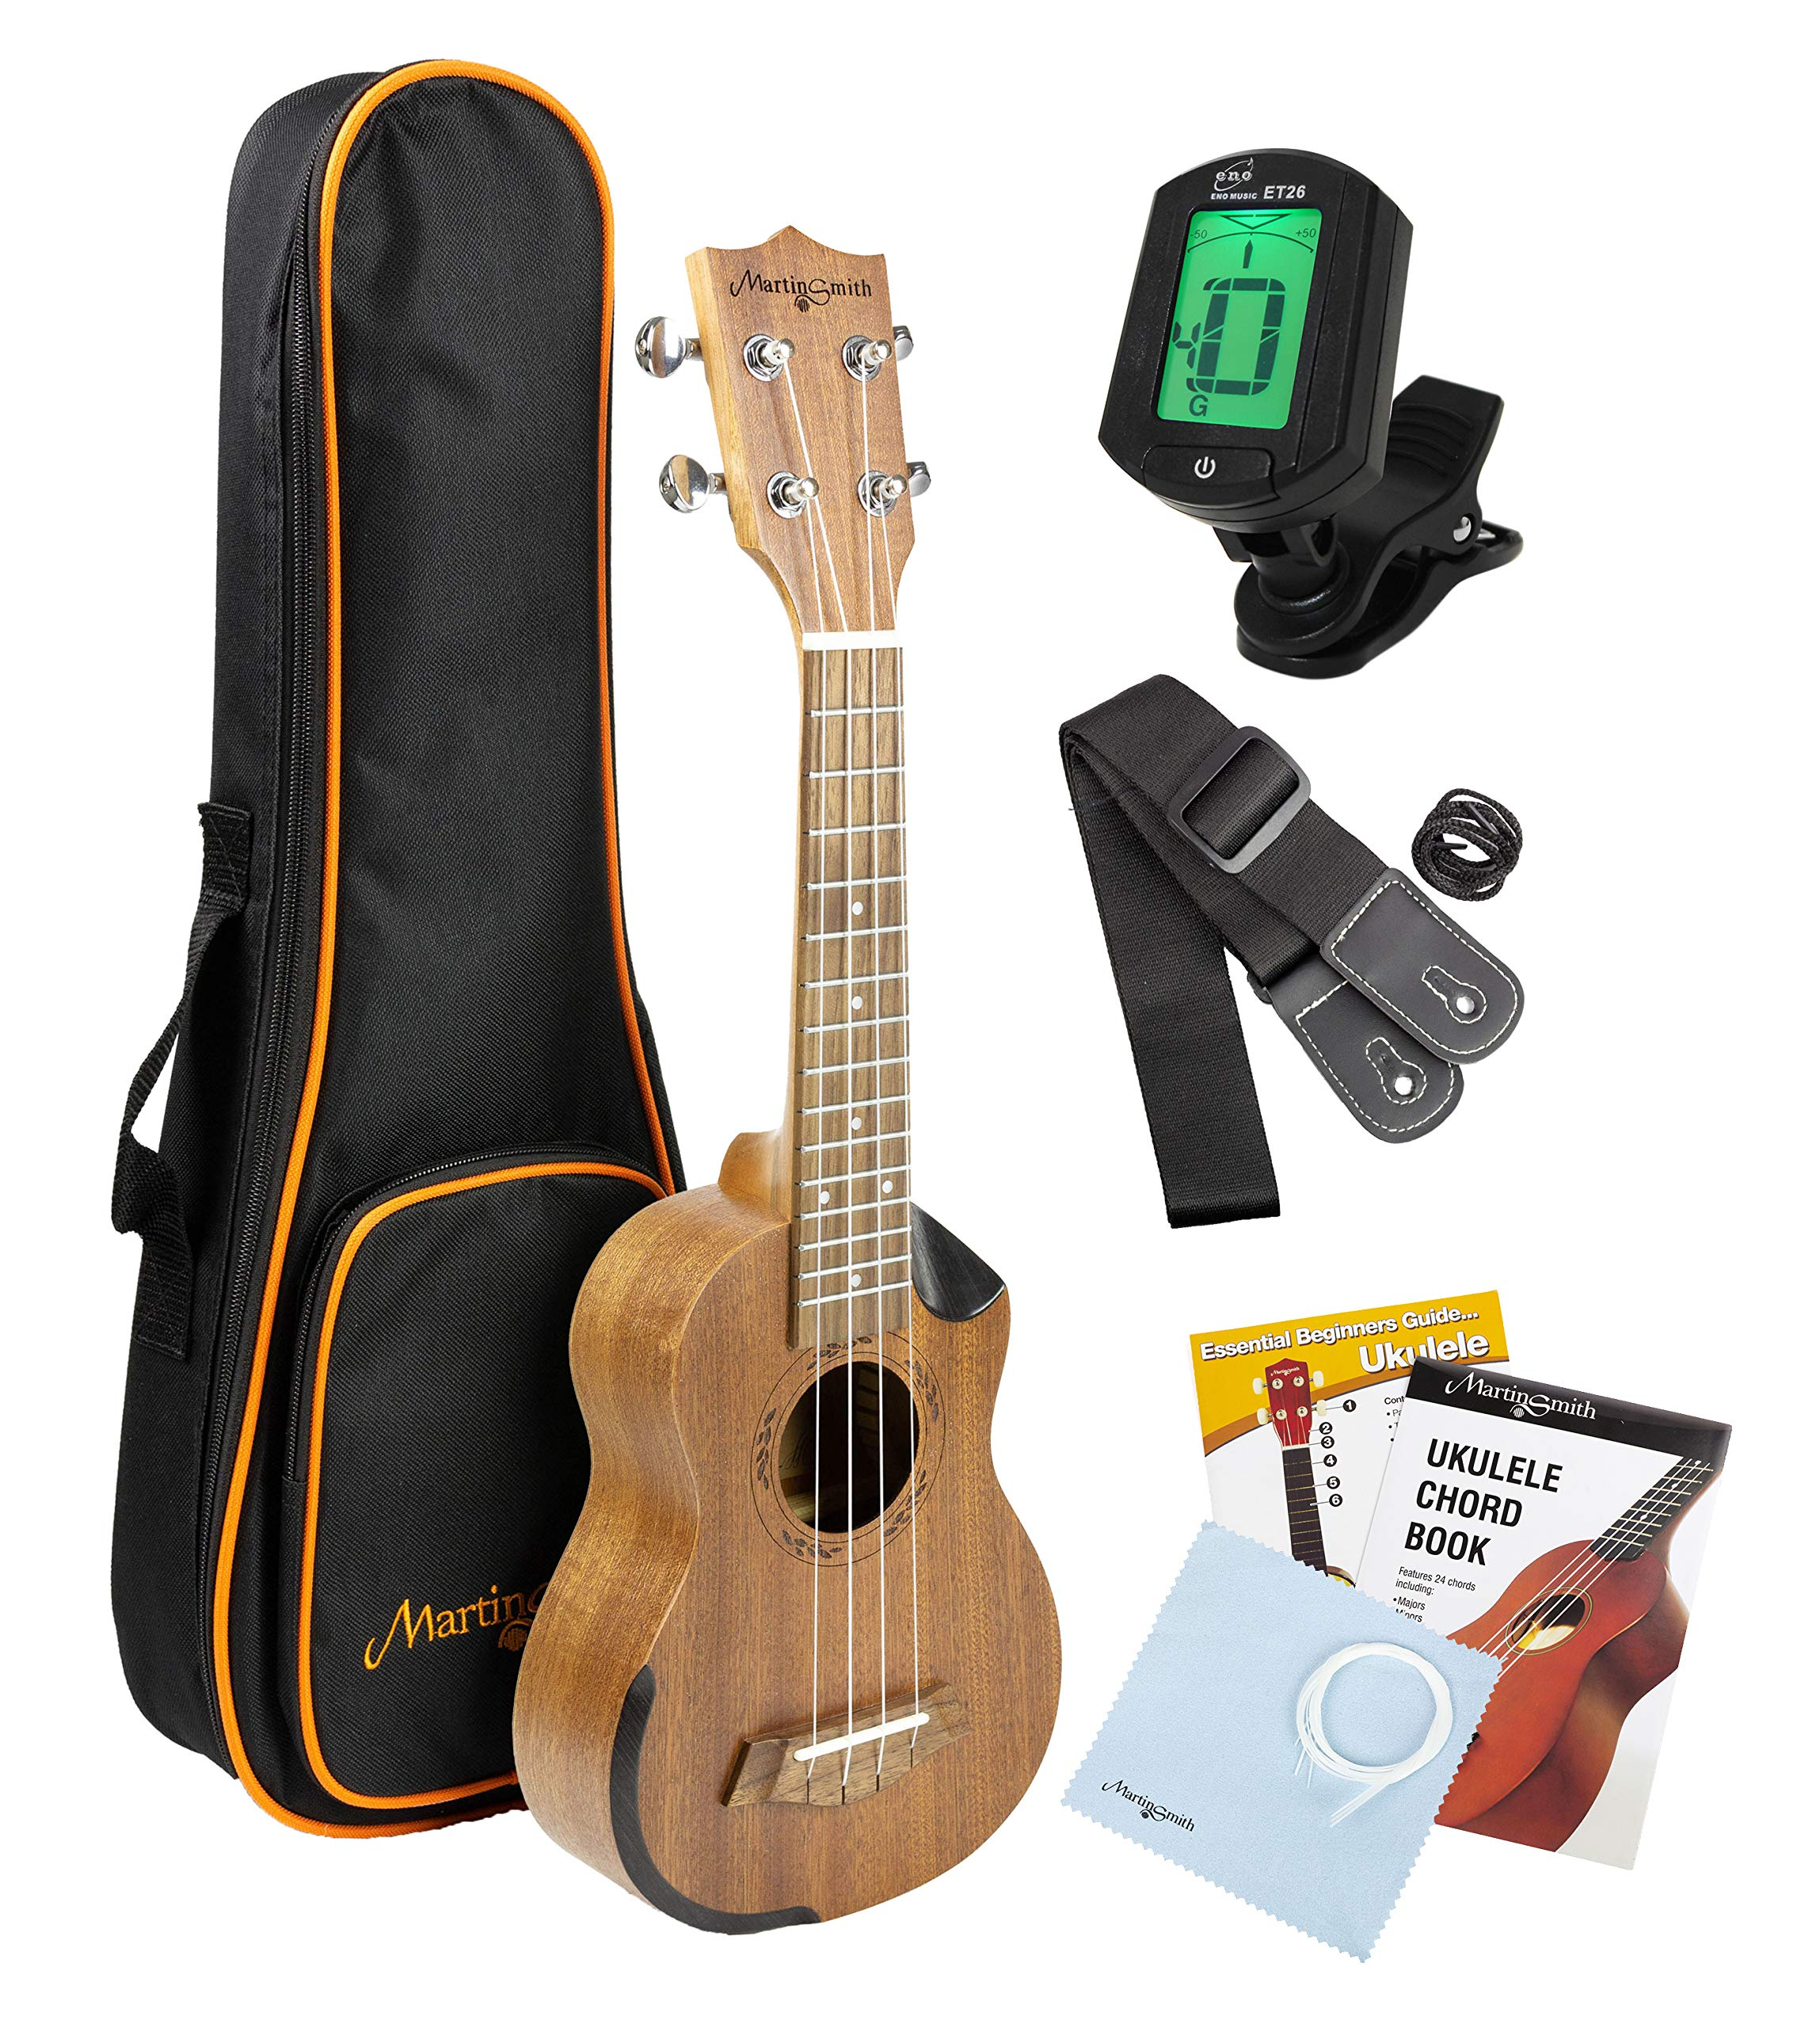 Martin Smith Soprano Ukulele Starter Kit with Aquila Strings - Includes Online Lessons, Tuner, Bag, Strap & Spare Strings